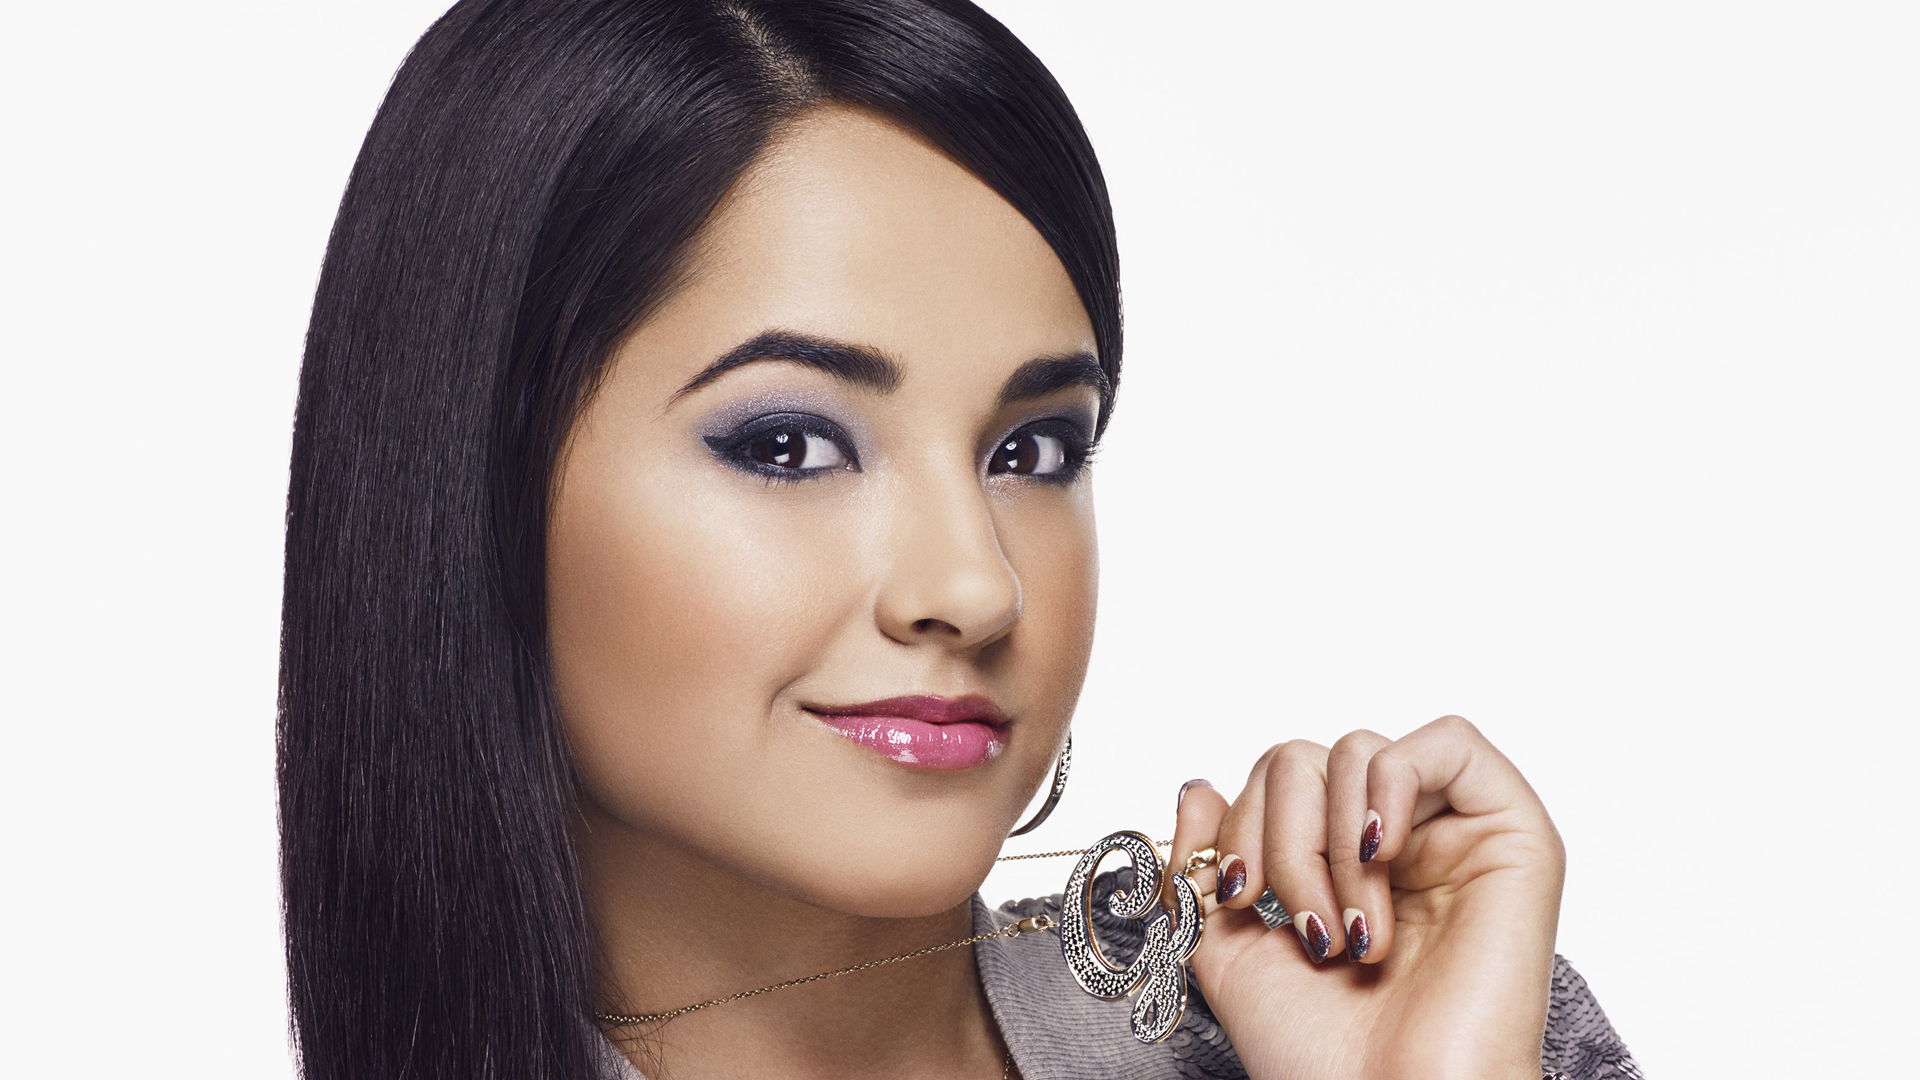 Becky G Download Free Backgrounds Hd